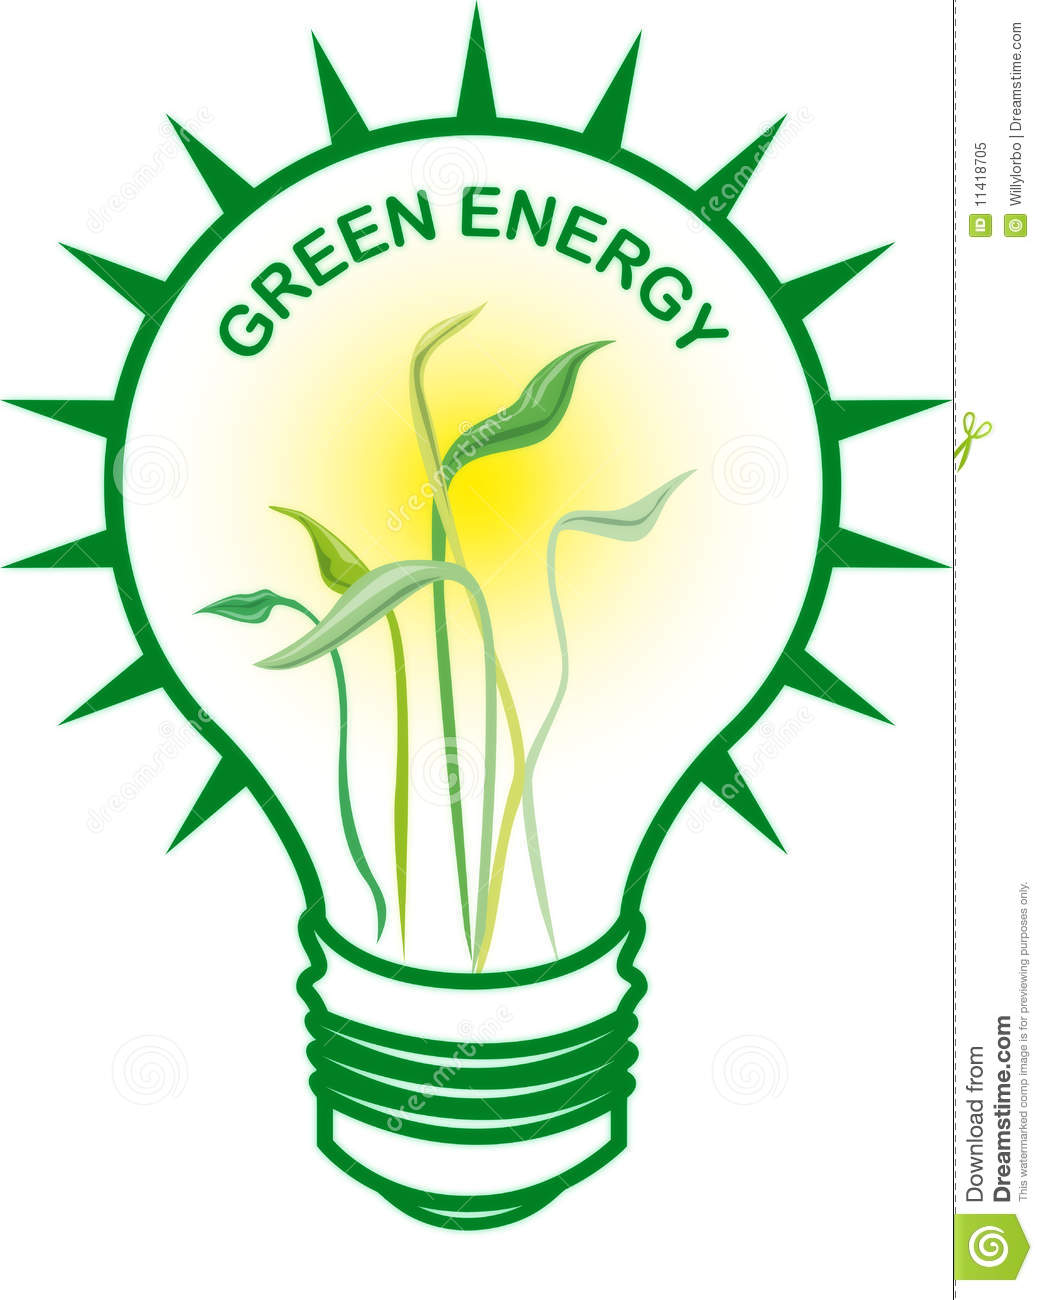 free clipart green energy - photo #2